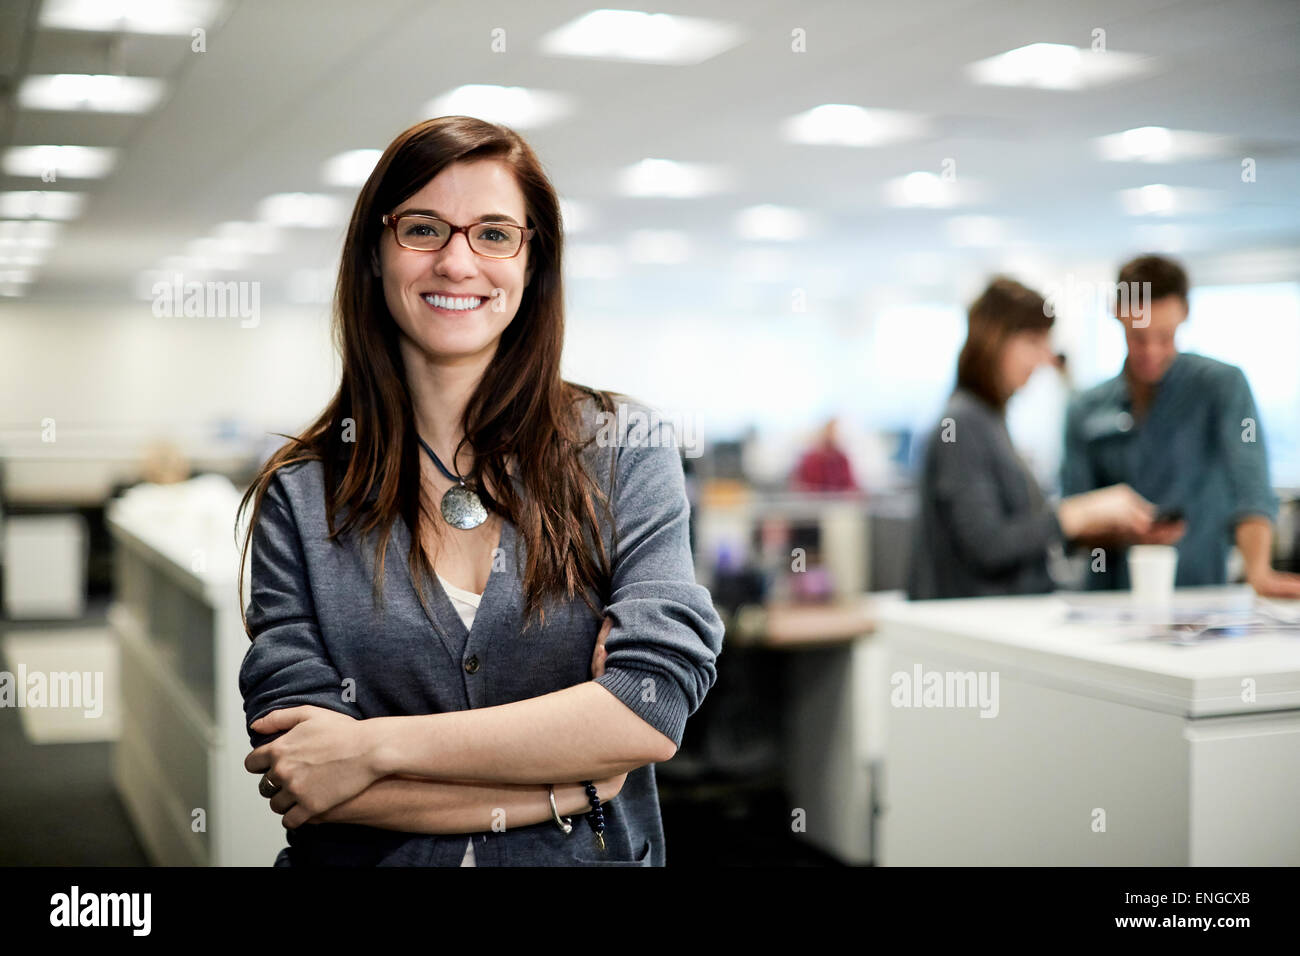 A woman with arms folded smiling. - Stock Image